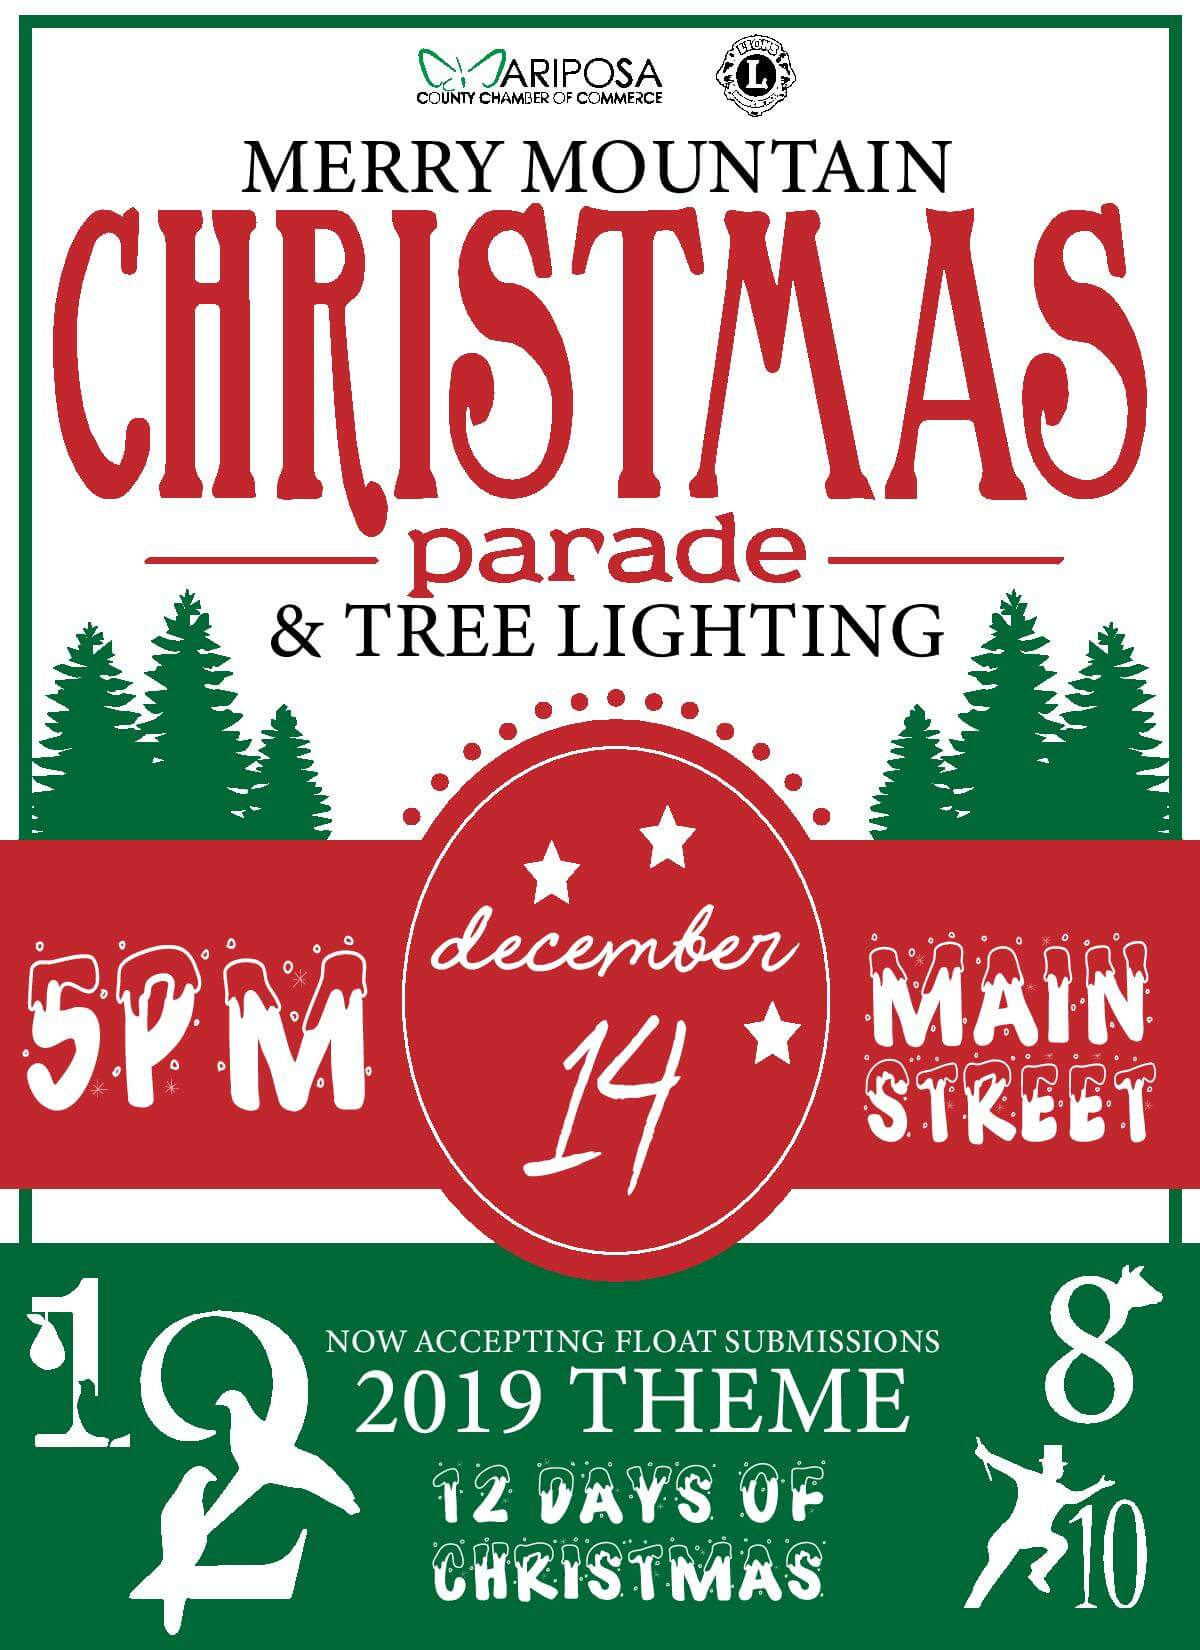 Annual Merry Mountain Christmas Parade and Tree Lighting